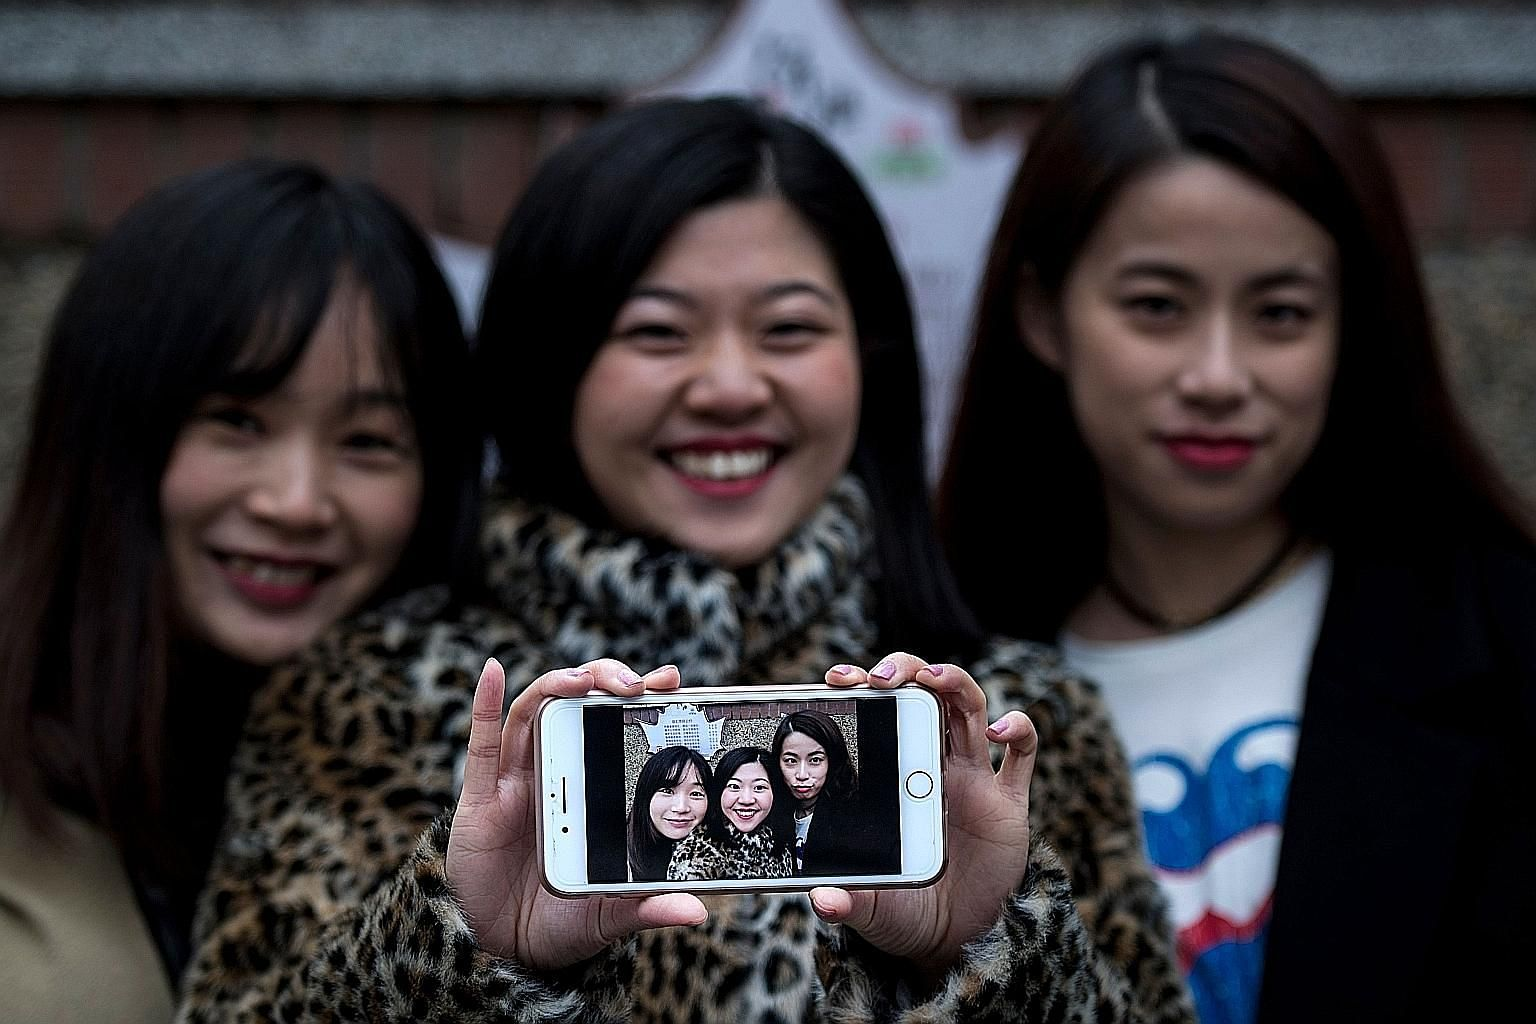 Ms Hu (far left) and her friends, Ms Wang Peng (centre) and Ms Peng Lin, with a selfie they took on Jan 8. Such virtual makeovers have propelled Meitu to the top ranks of downloads in China.